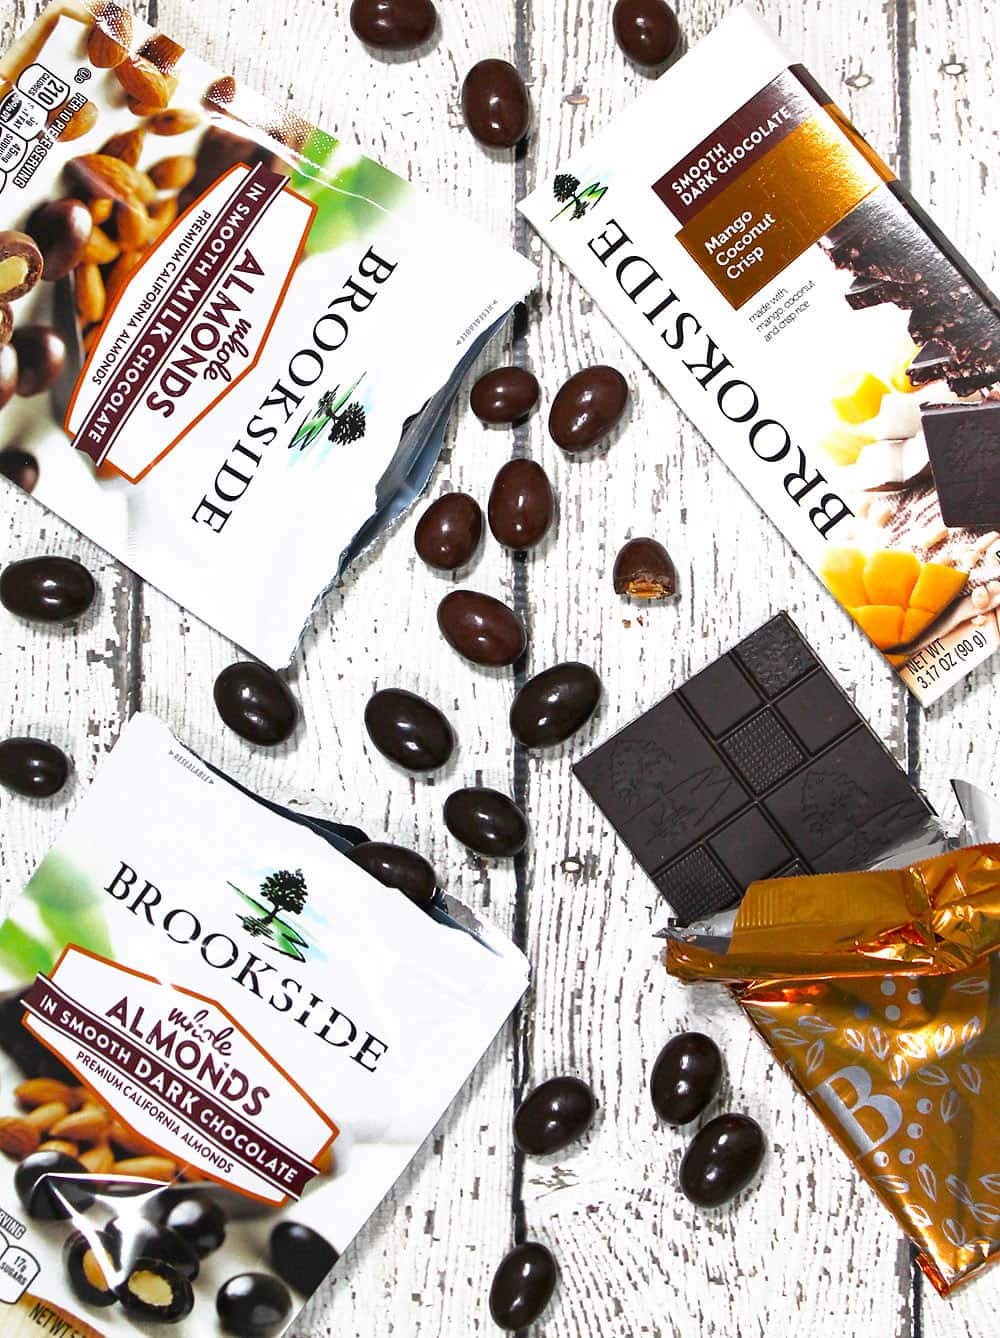 New Brookside Chocolates